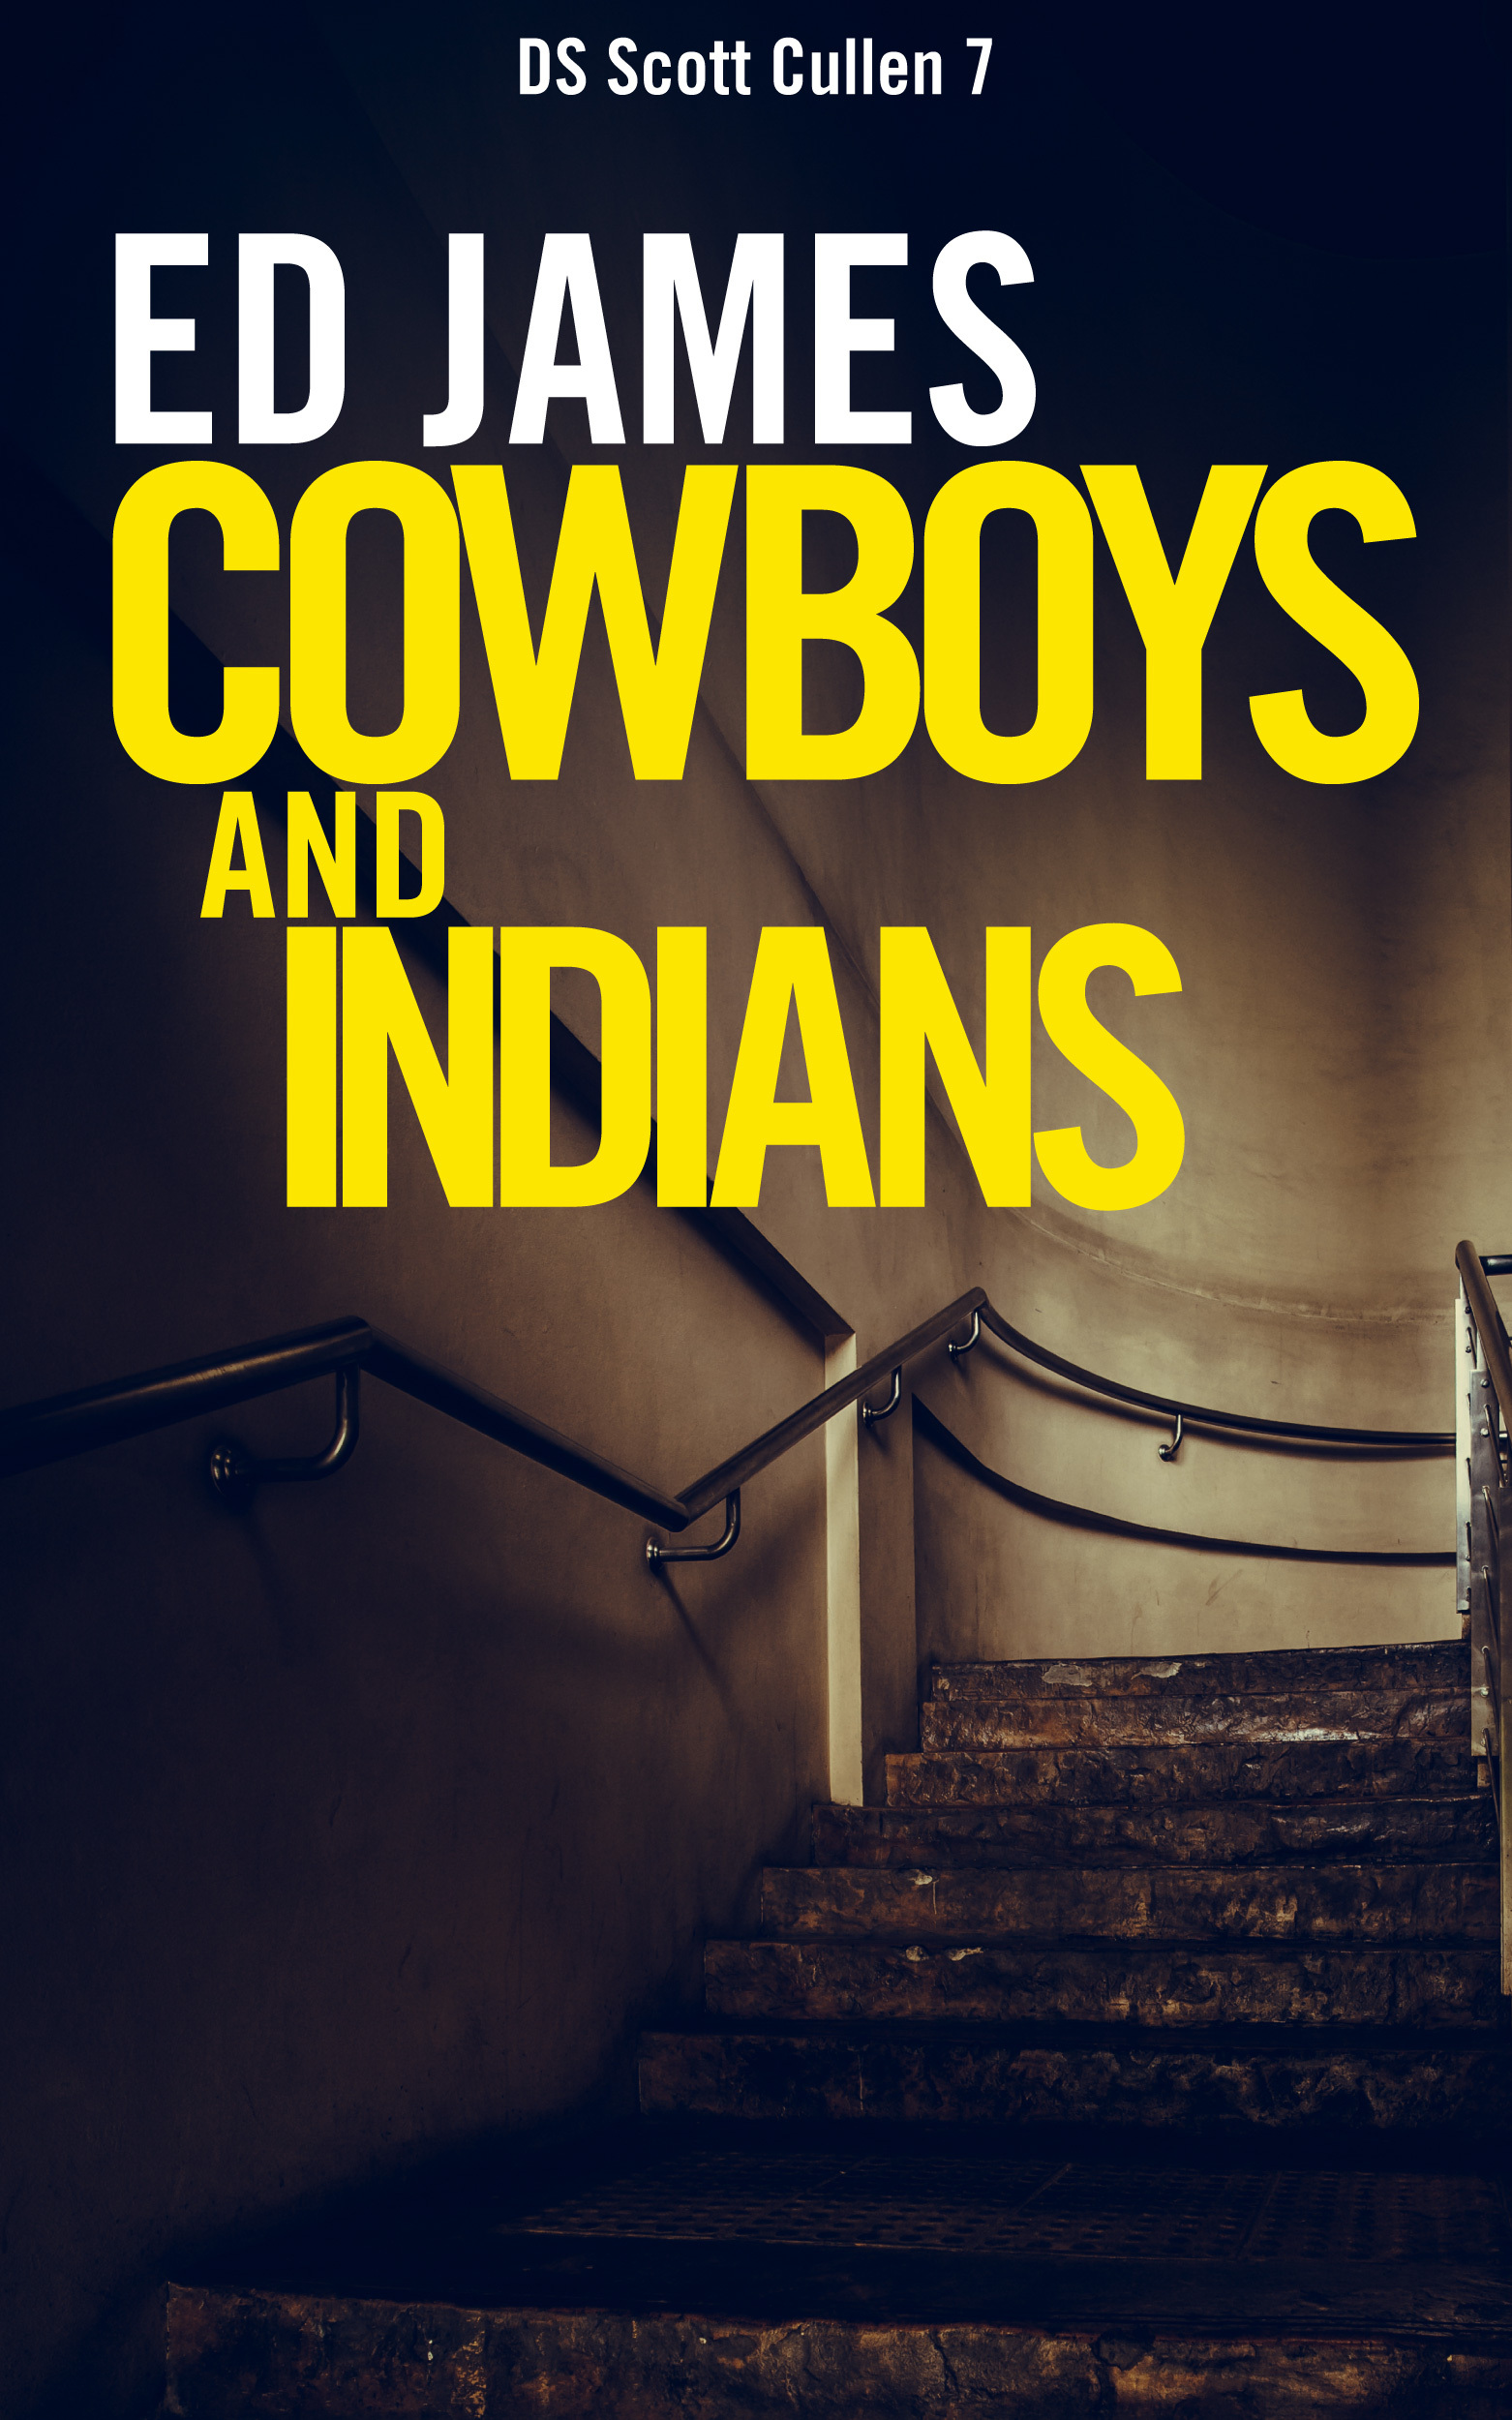 cowboys and Indian